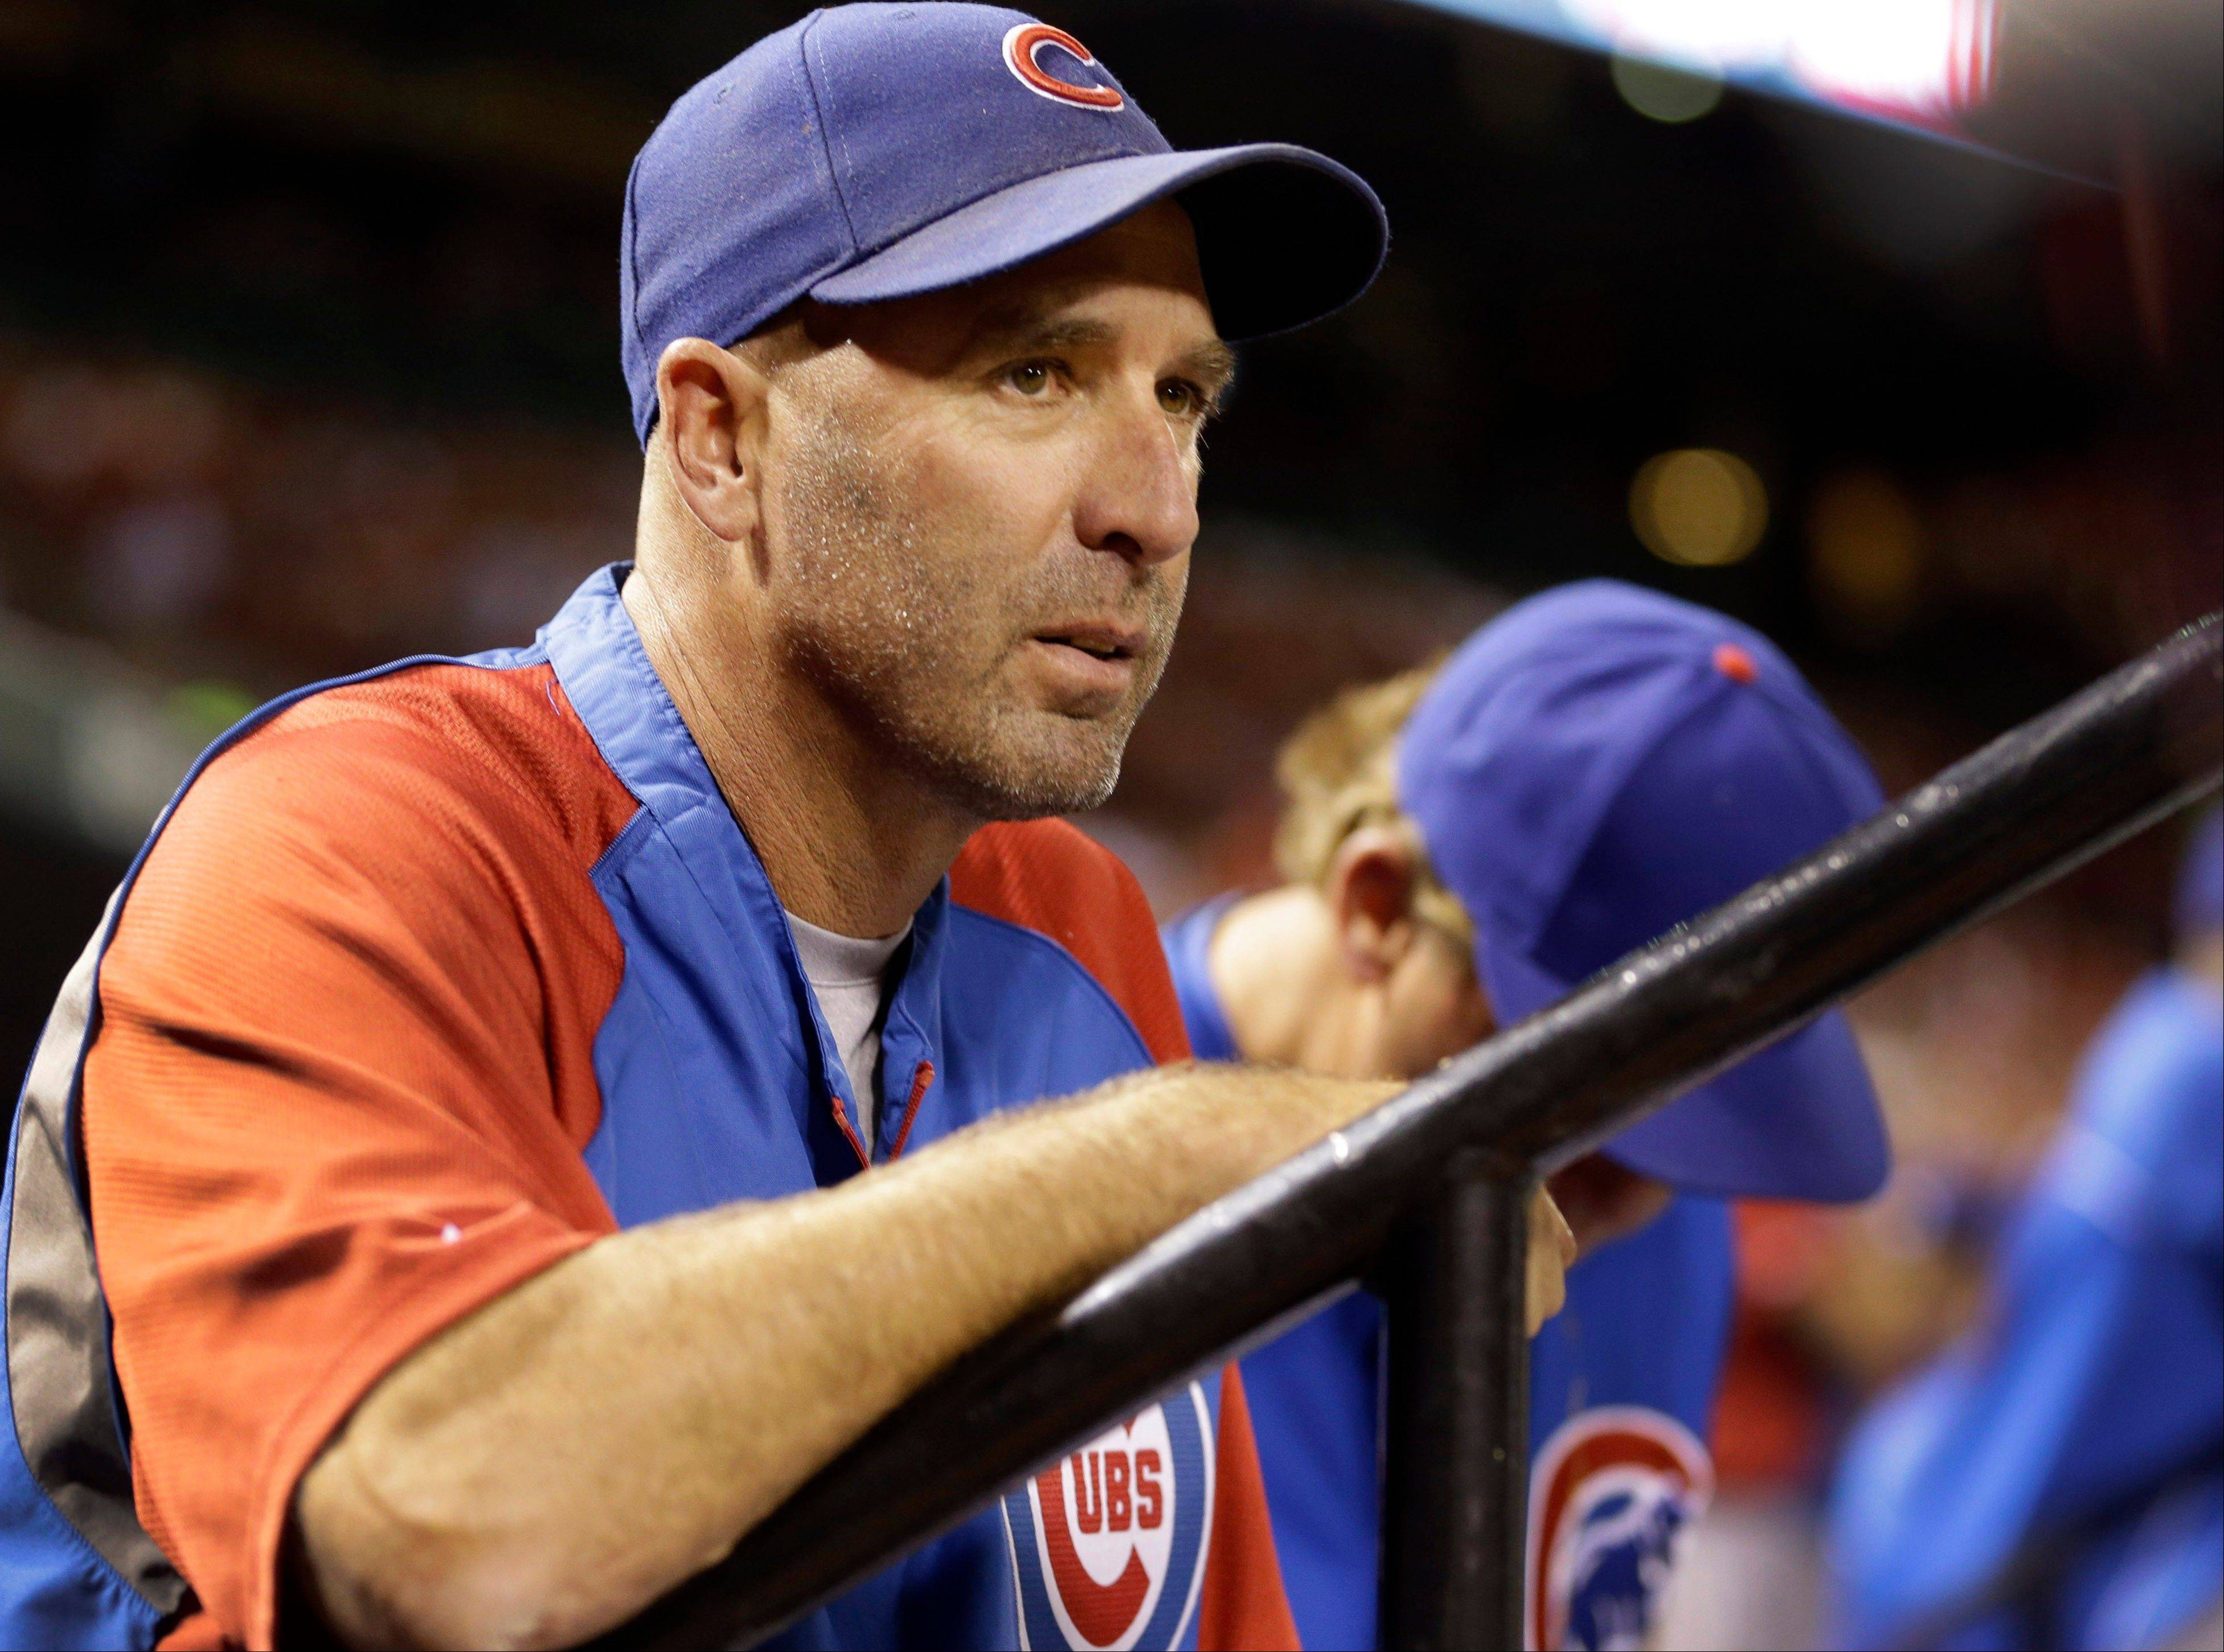 The Cubs fired manager Dale Sveum on Monday after the team finished last in the NL Central.